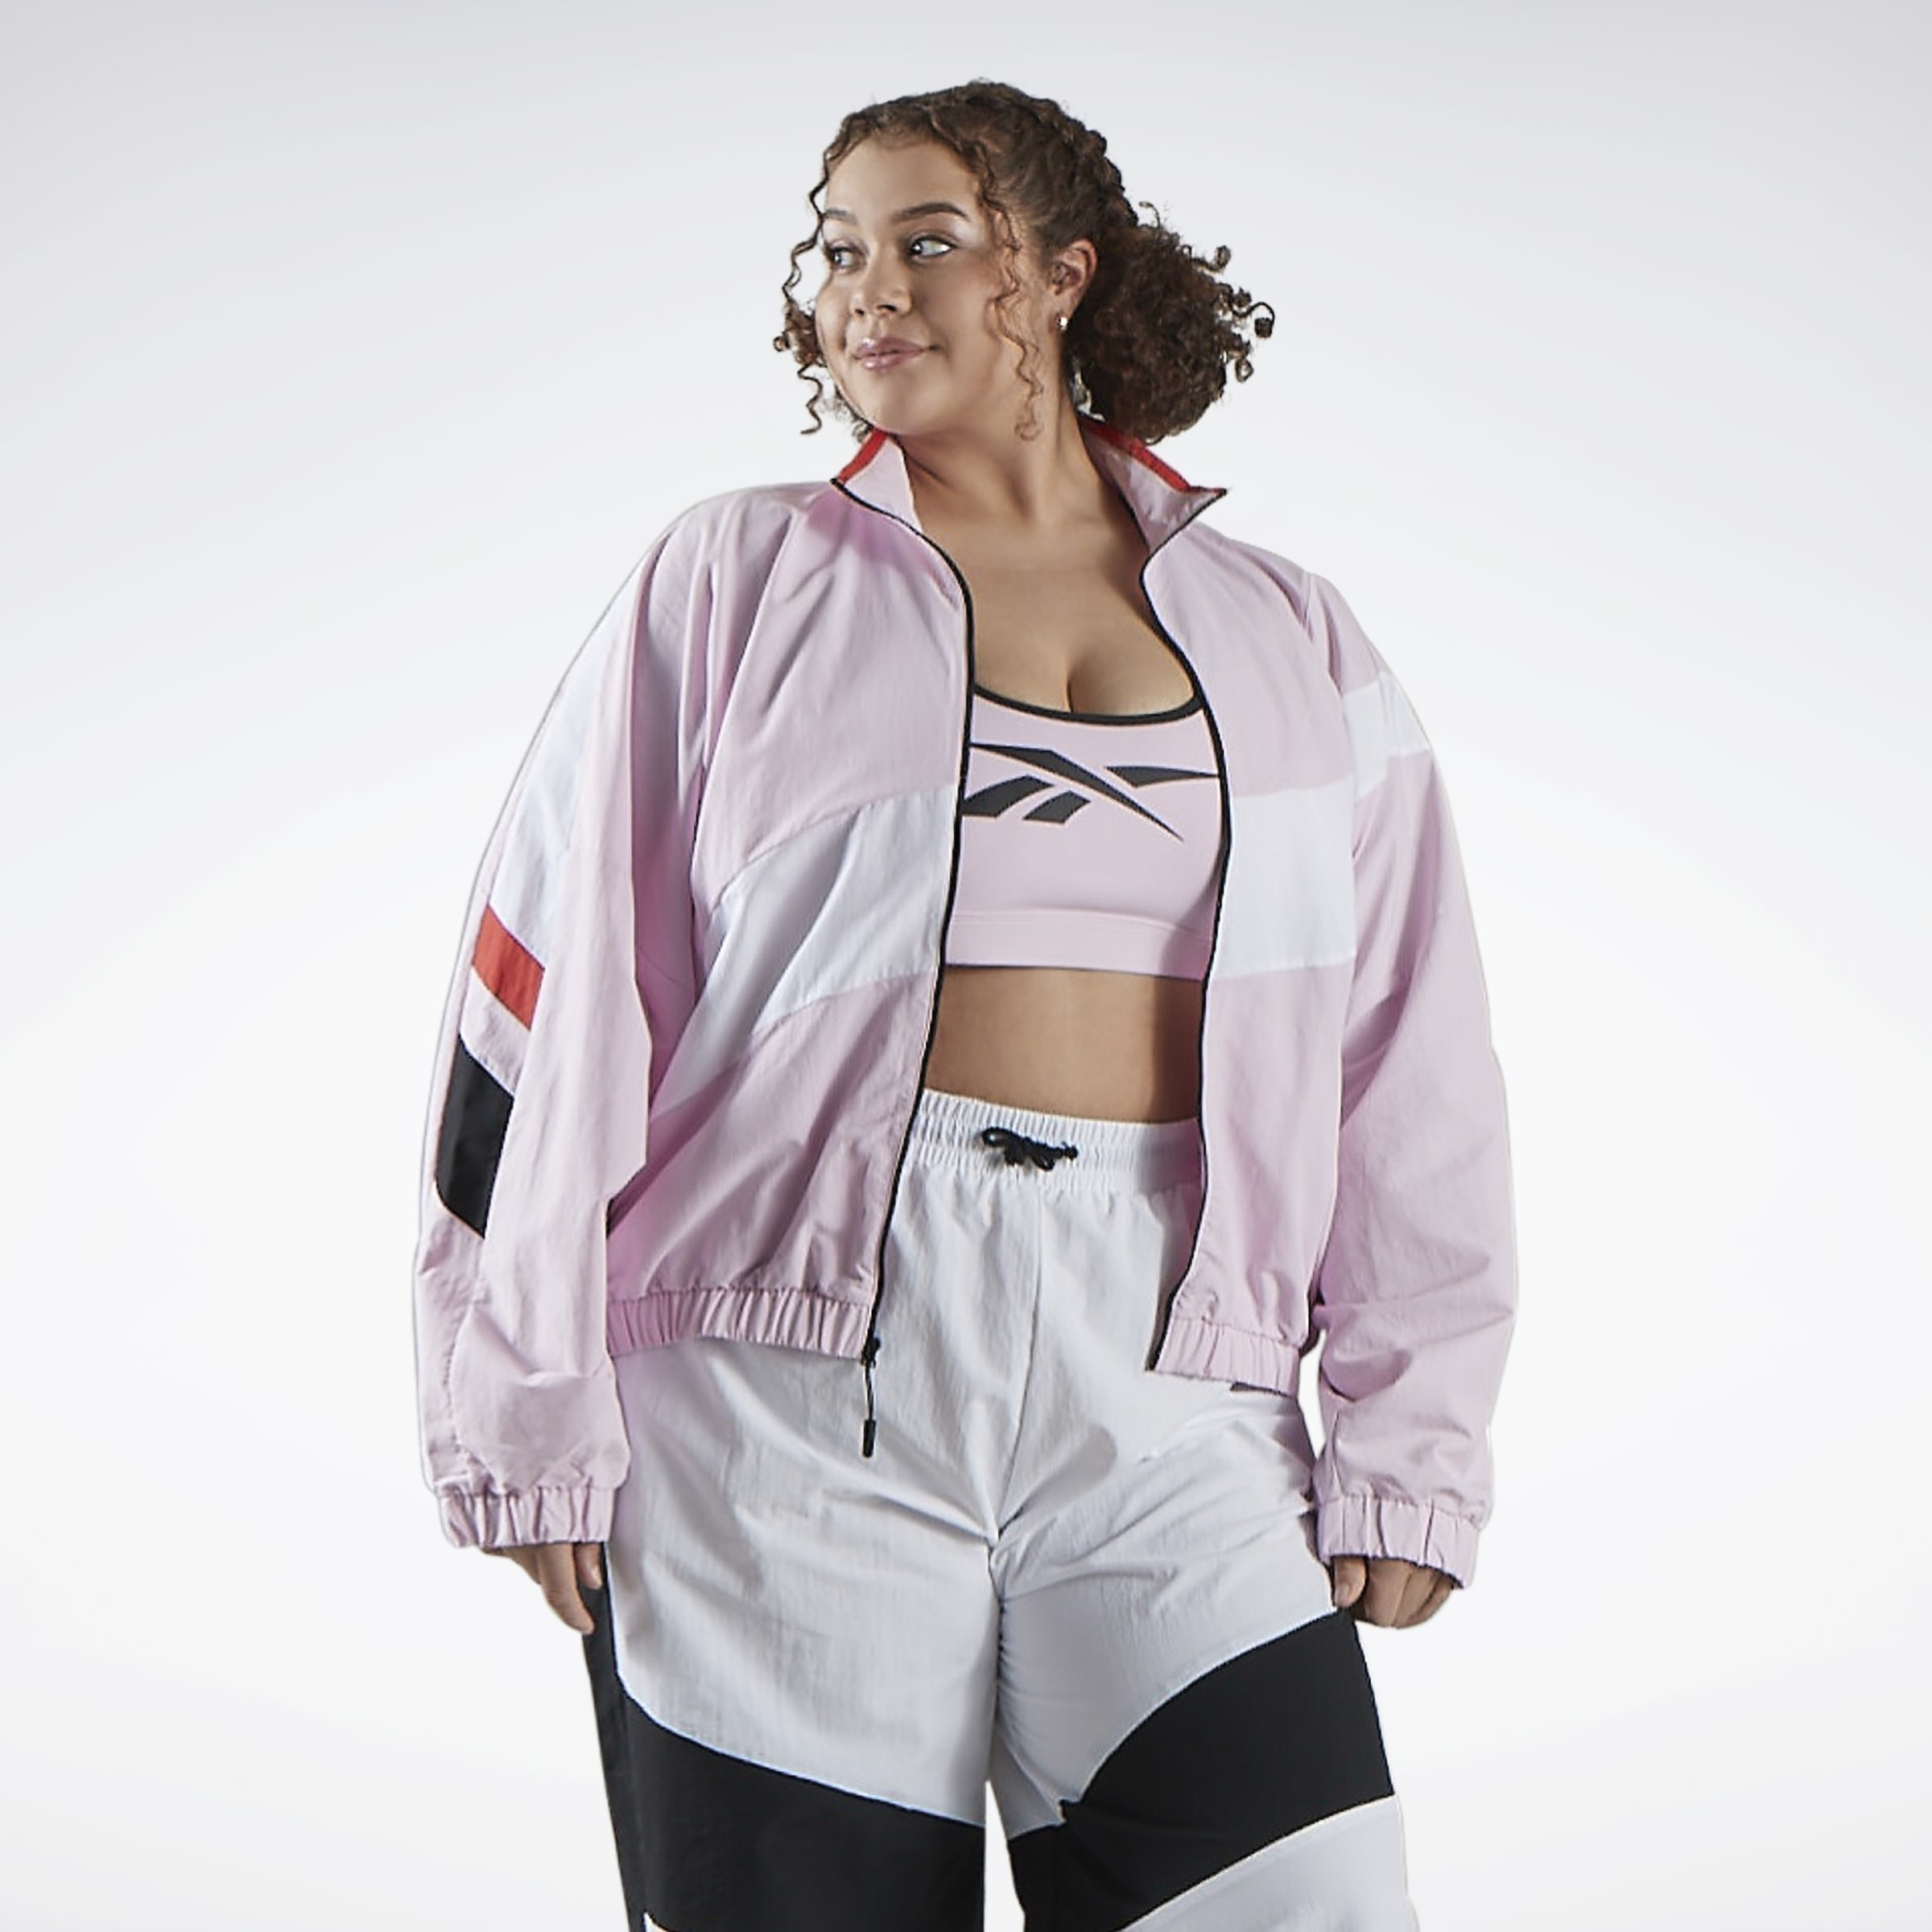 Model wearing the zip-front jacket in light pink with a white panel through the middle and black and red stripes on the side